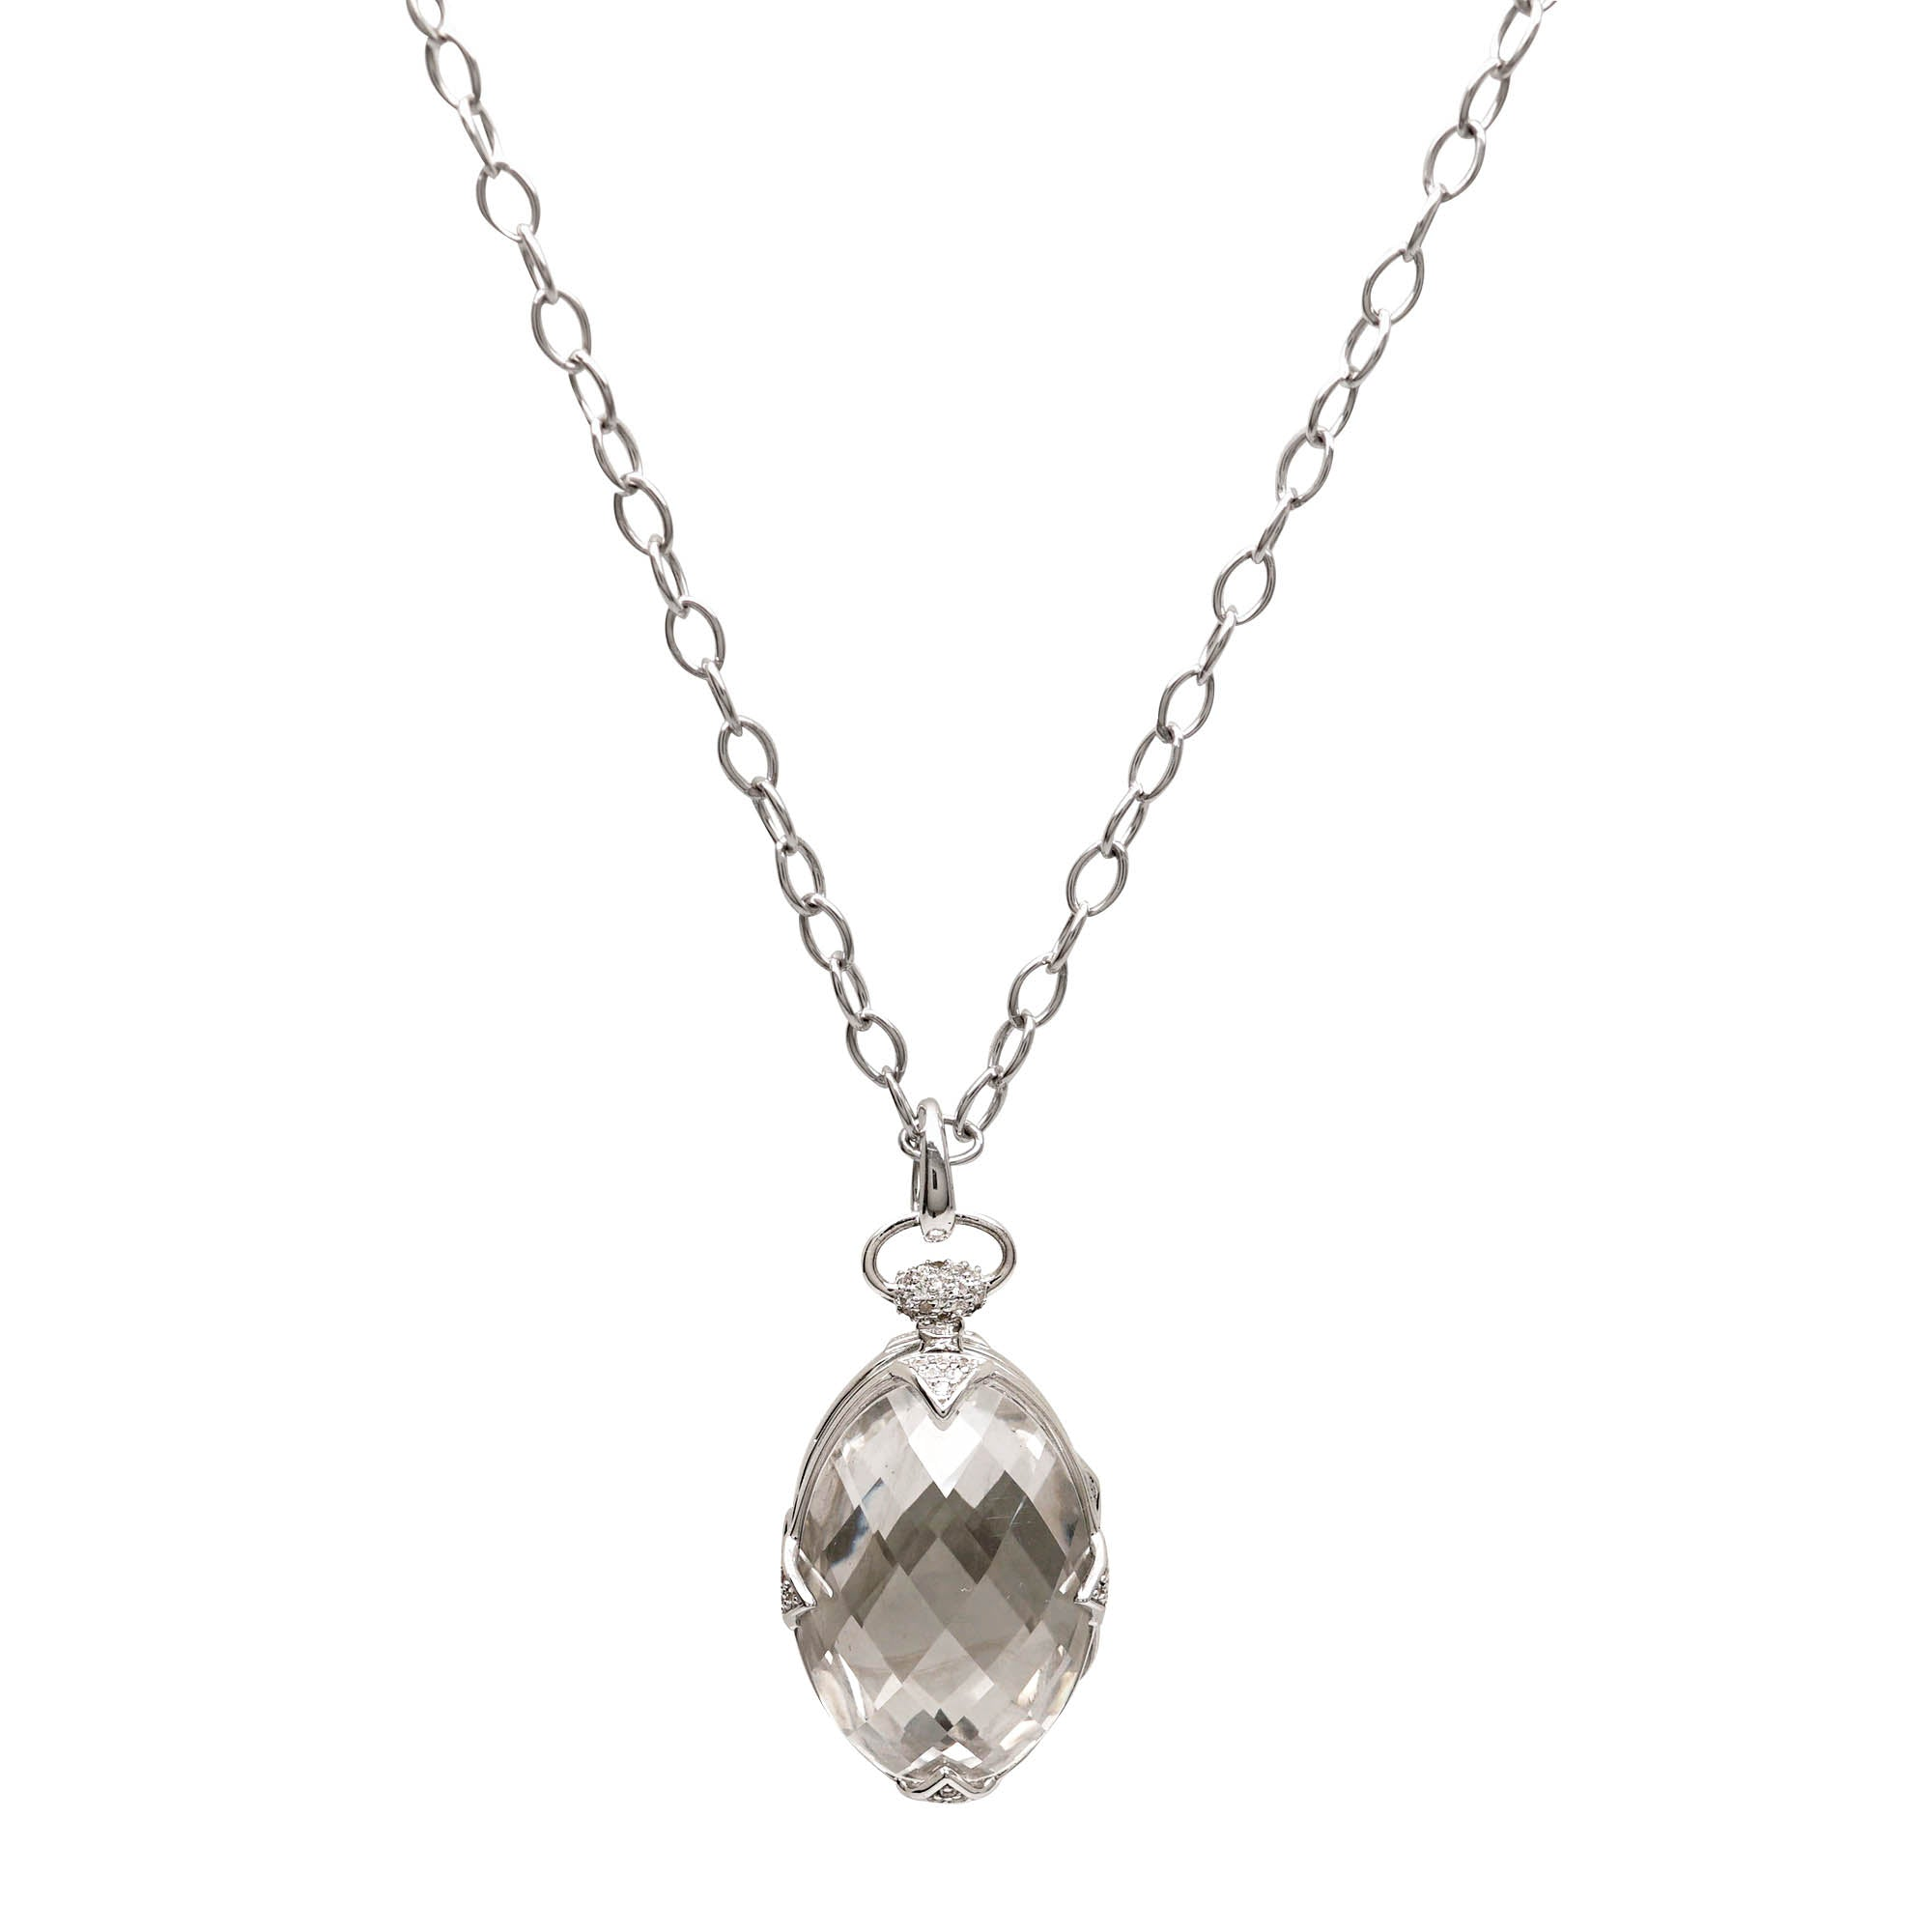 brave silver capped collections necklace pendant stone crystal rock over products